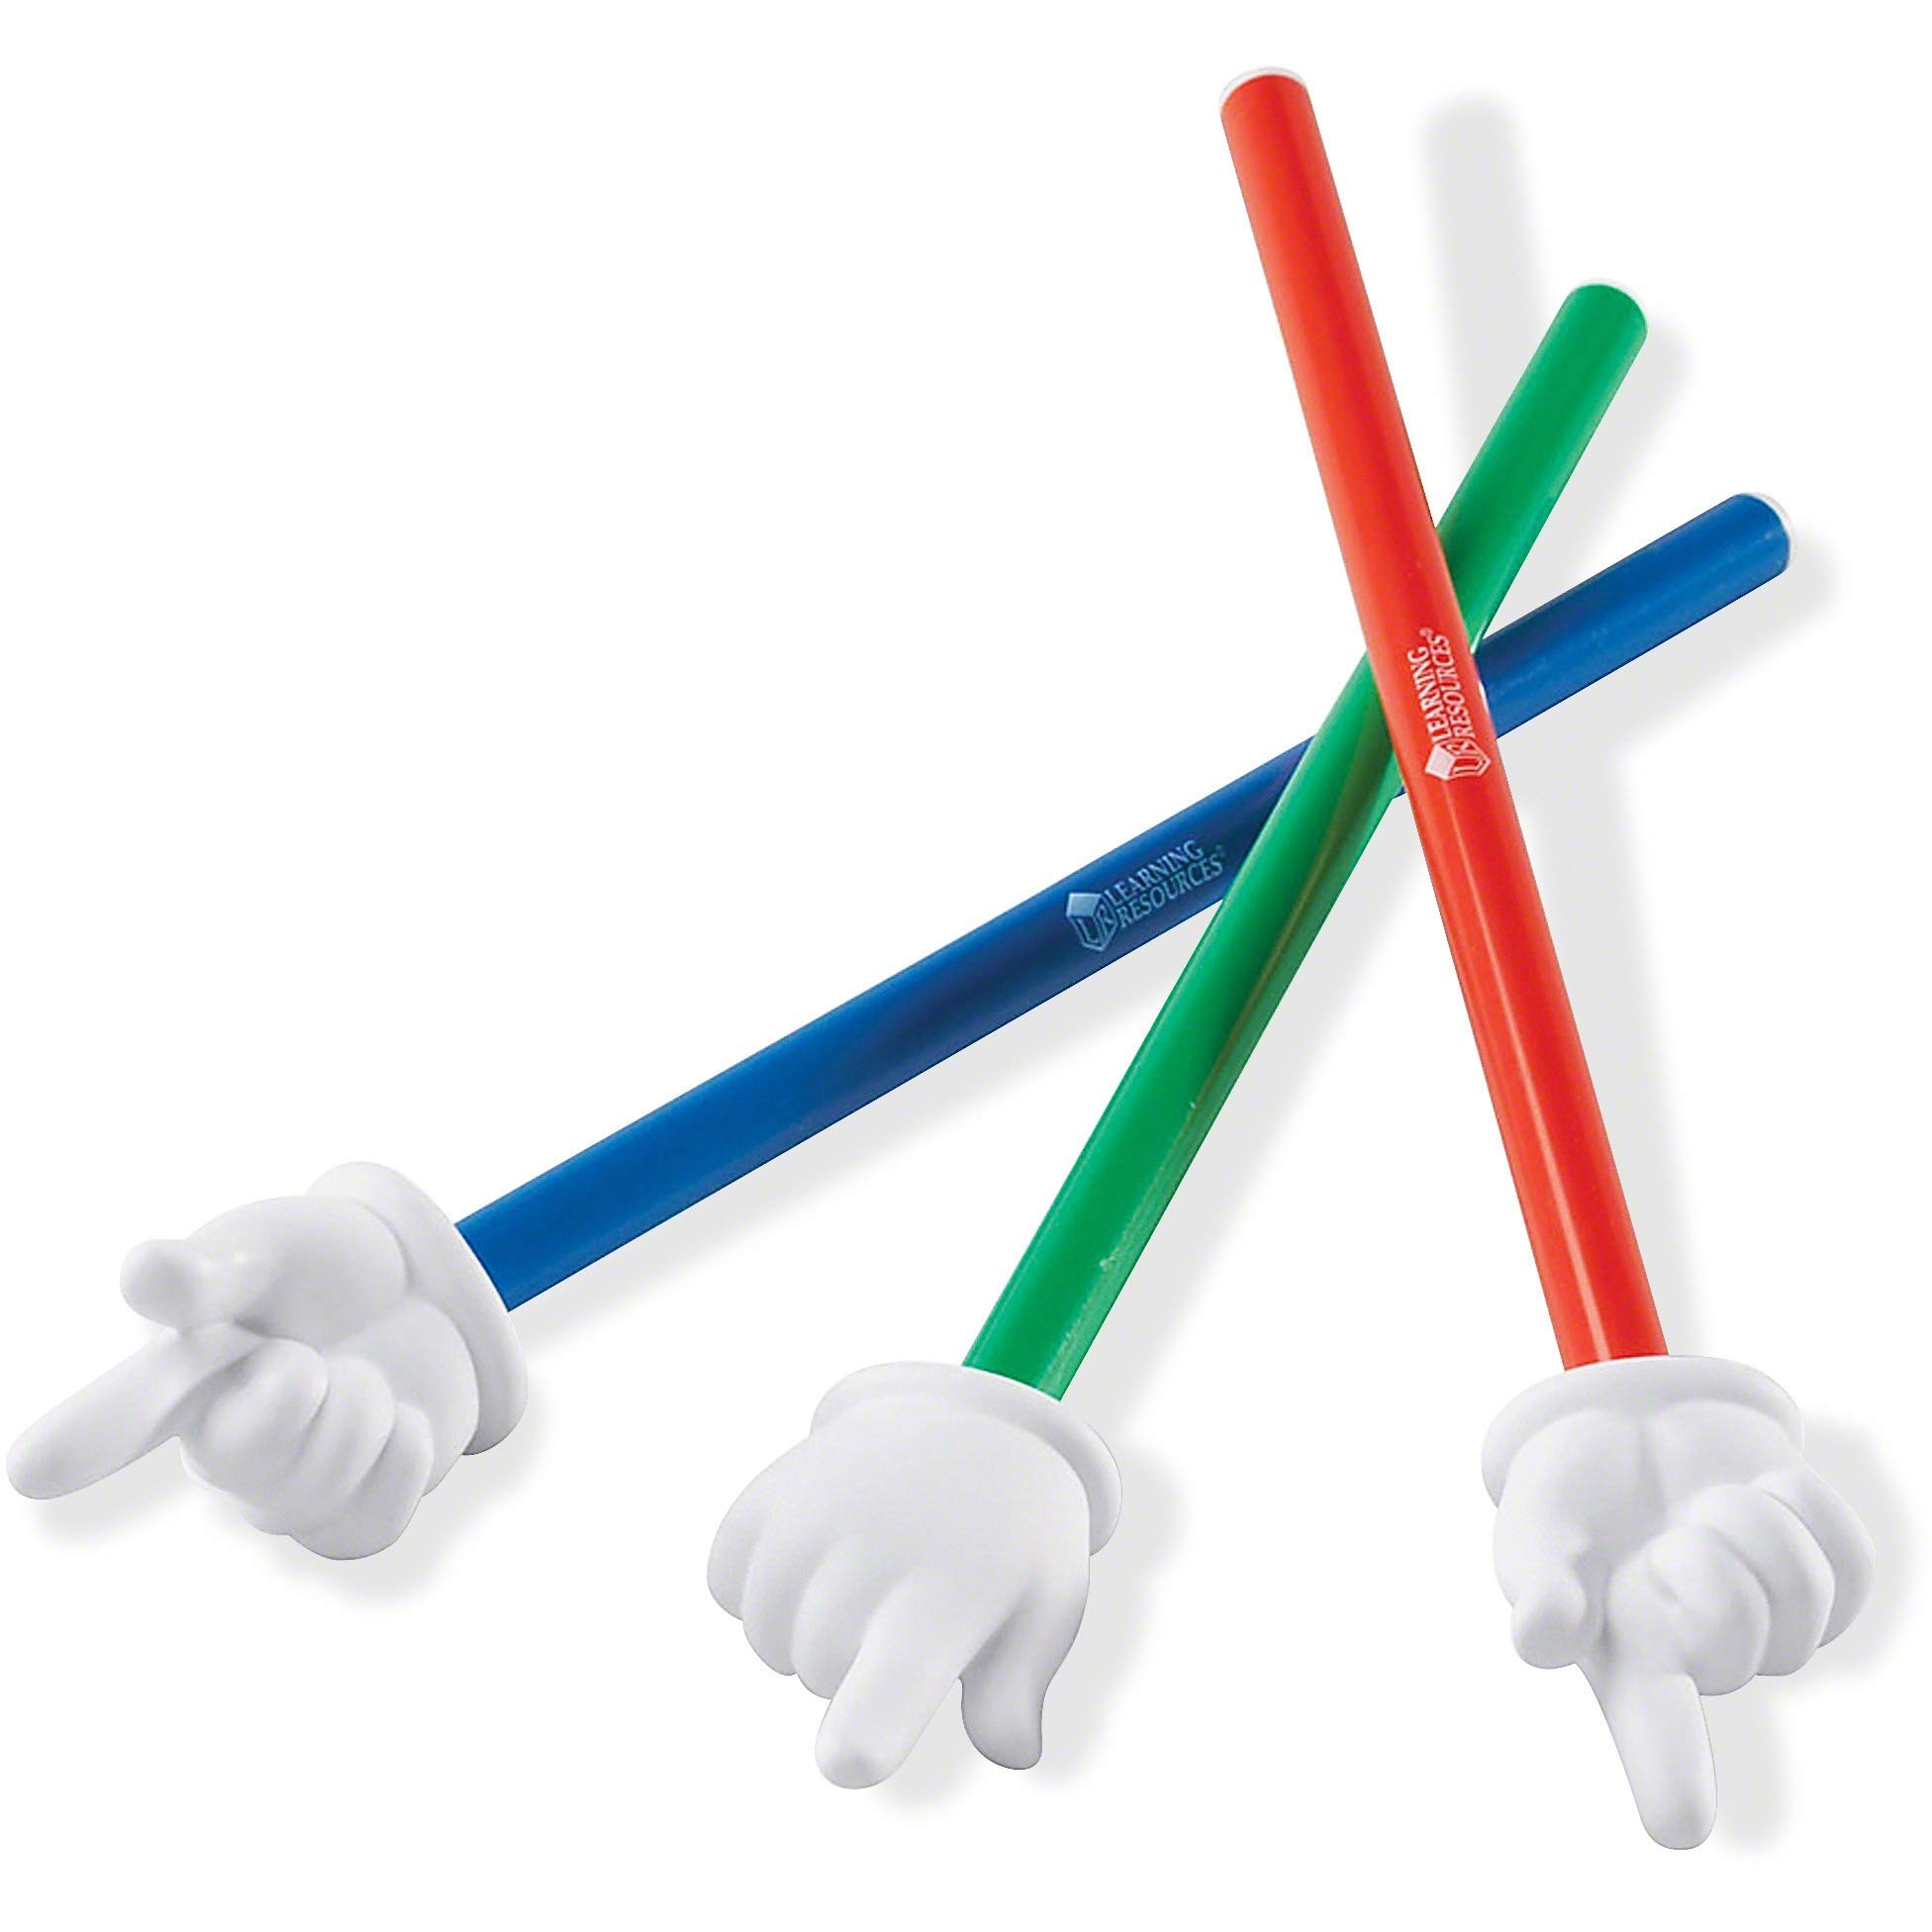 Learning Resources Hand Pointers, Assorted Colors, Classroom Participation, Homeschool Supplies, Classroom Supplies, Gifts for Teachers, Set of 3, Ages 3+